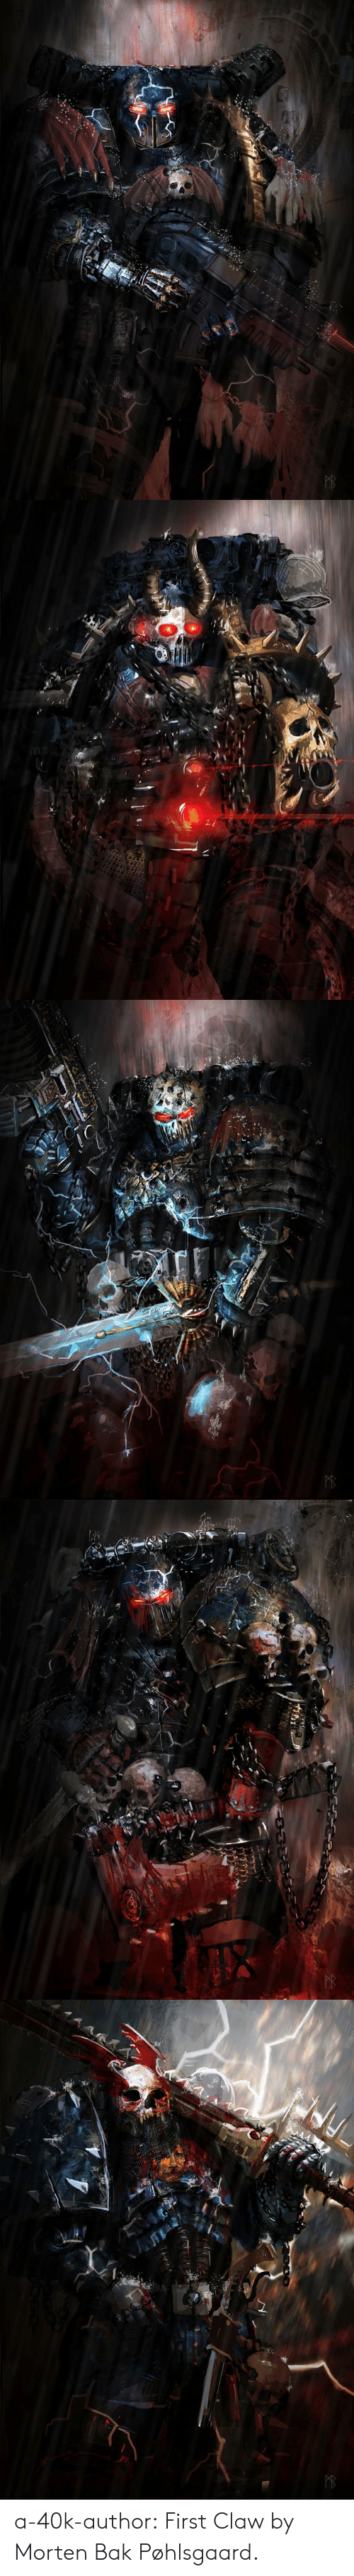 Tumblr, Blog, and 40k: a-40k-author:  First Claw by Morten Bak Pøhlsgaard.